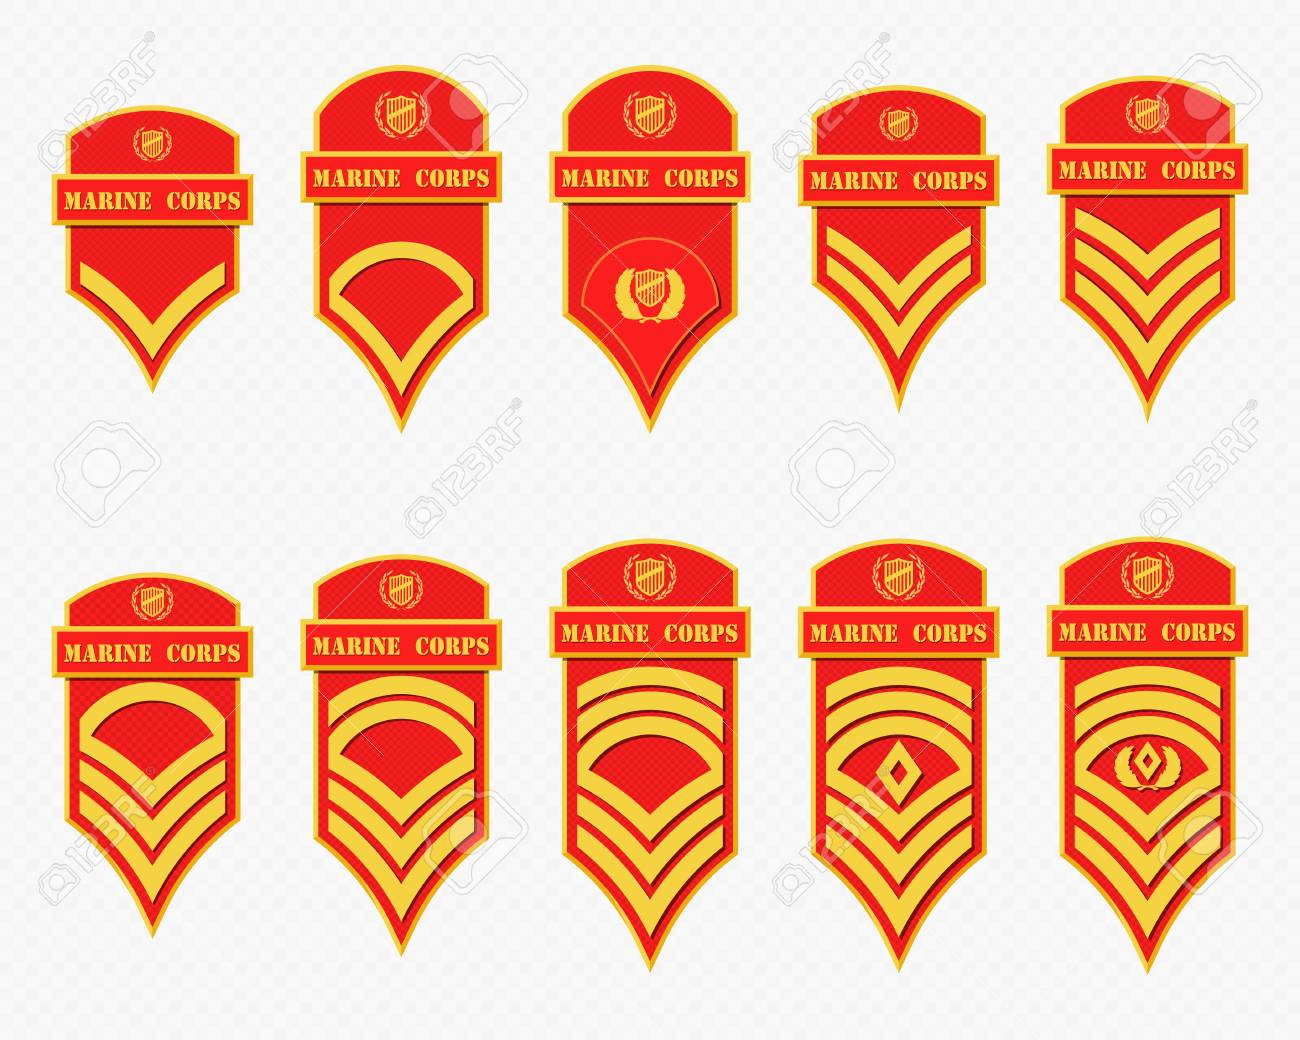 Military Ranks Stripes and Chevrons. Vector Set Army Insignia.